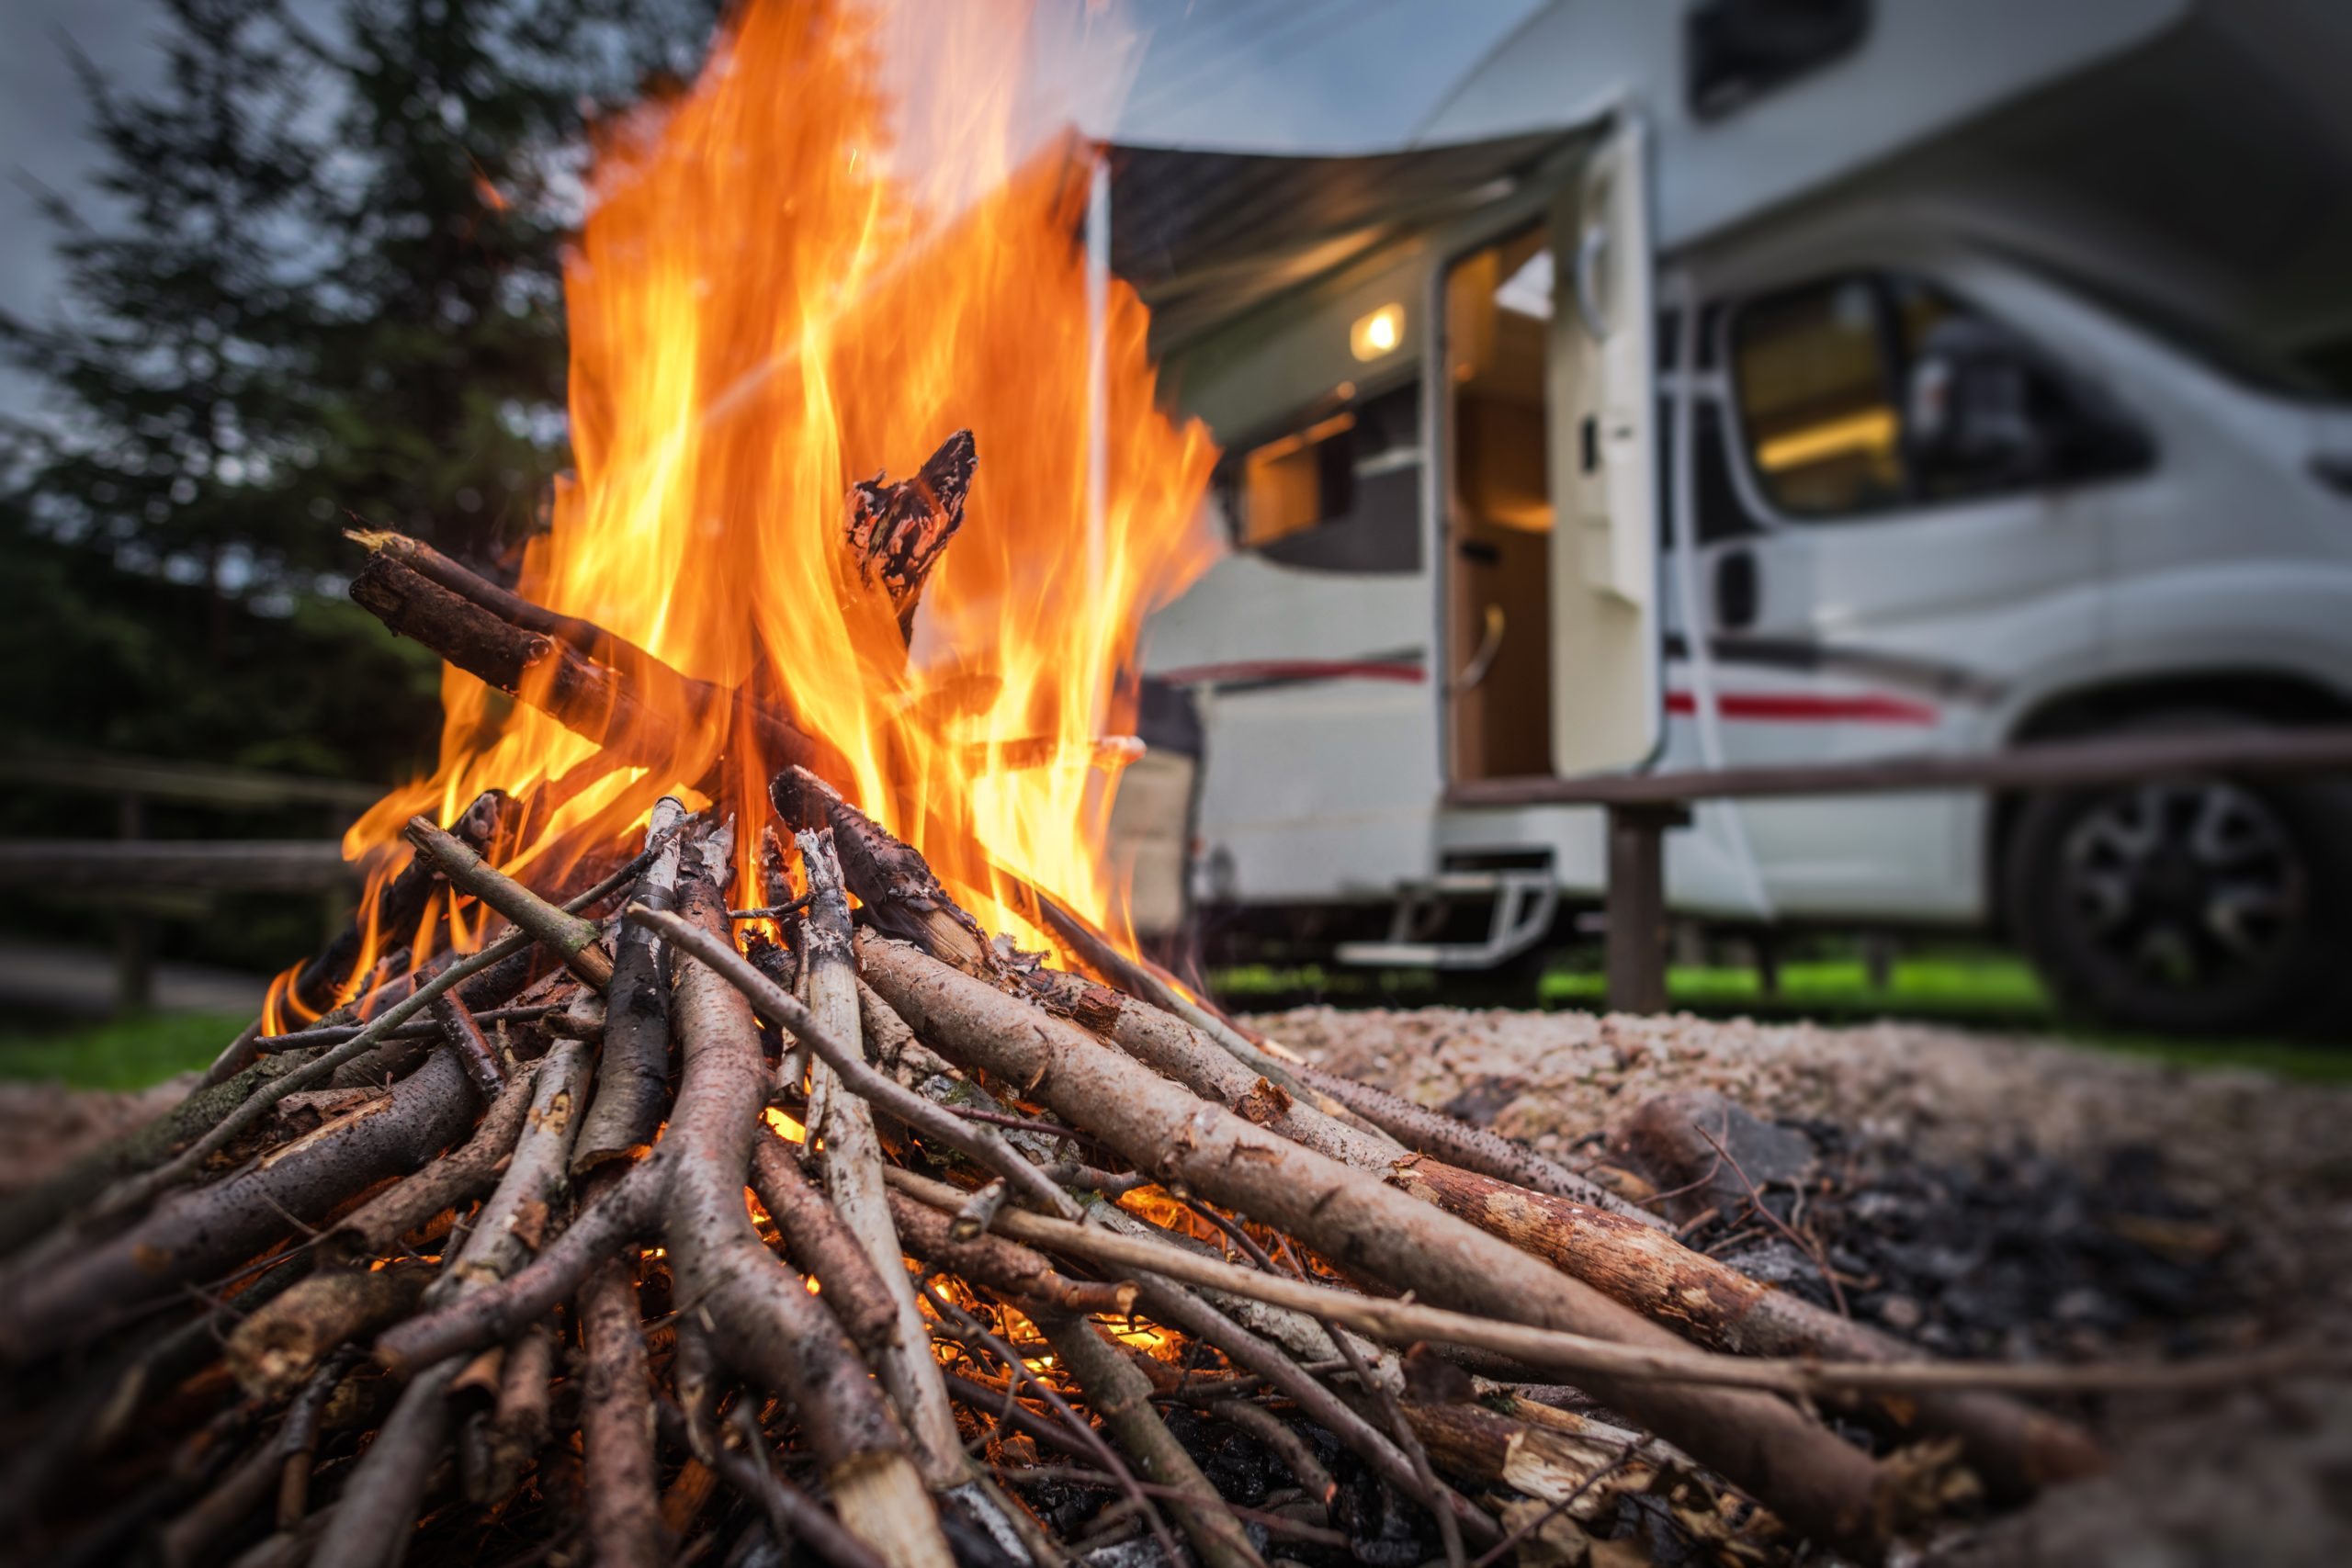 RV Park Campfire in Front of Motorhome Pitch. Summer Camping with Motorhome.